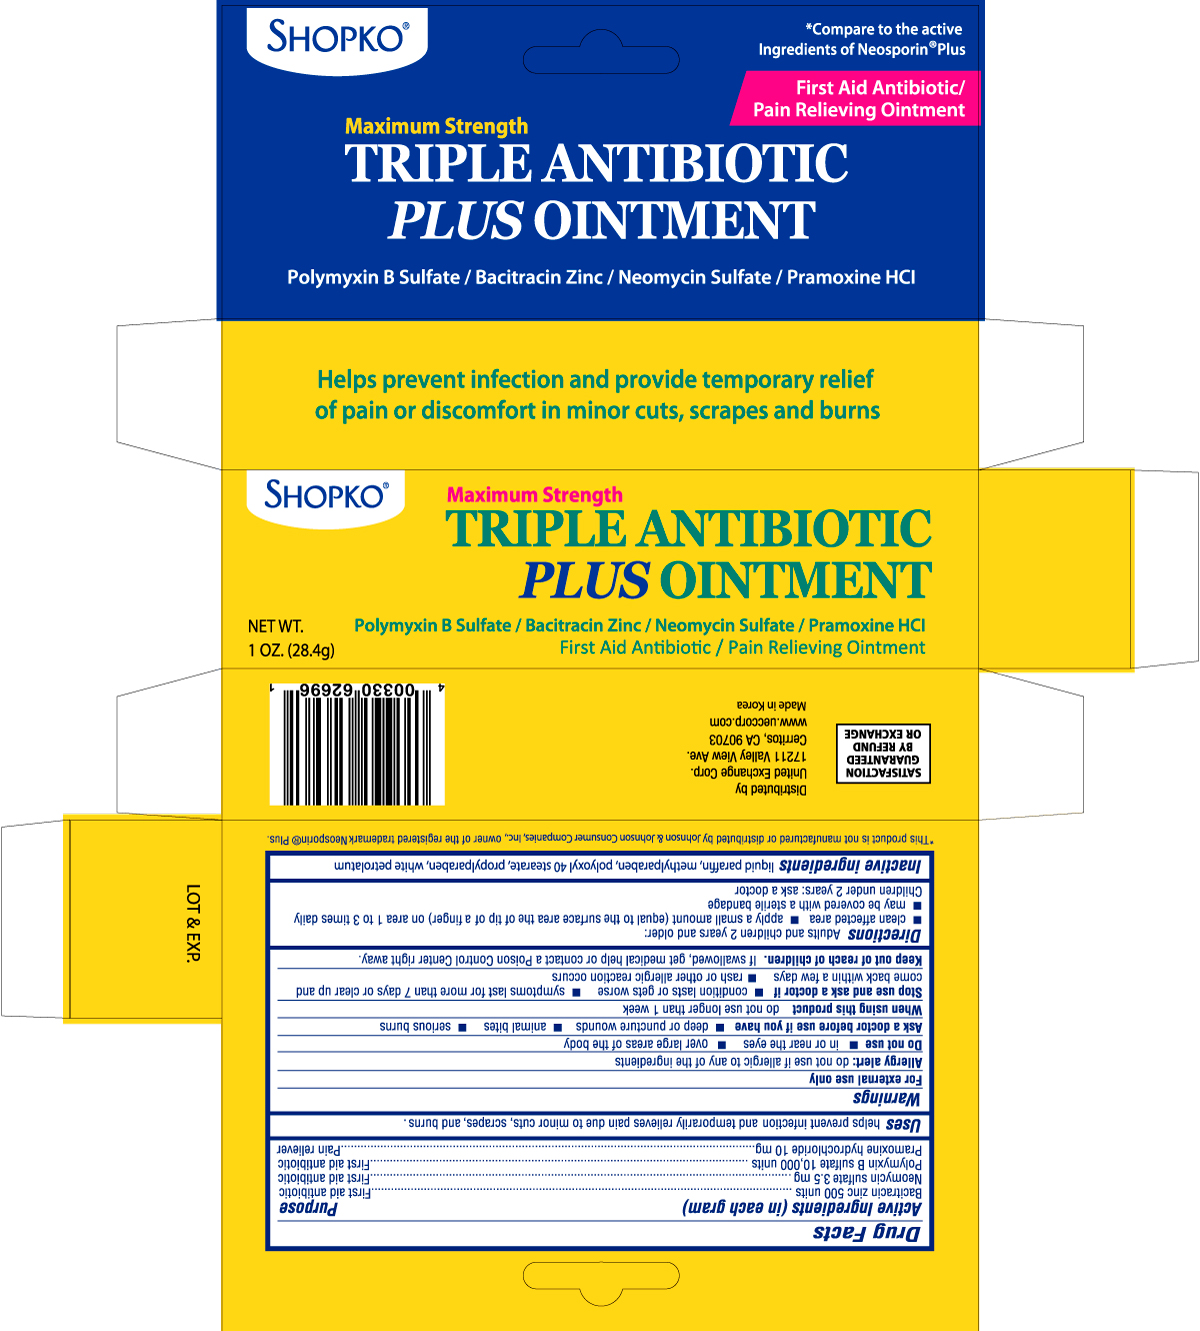 Shopko Triple Antibiotic Plus (Bacitracin Zinc, Neomycin Sulfate, Polymyxin B Sulfate, Pramoxine Hydrochloride) Ointment [United Exchange Corp.]